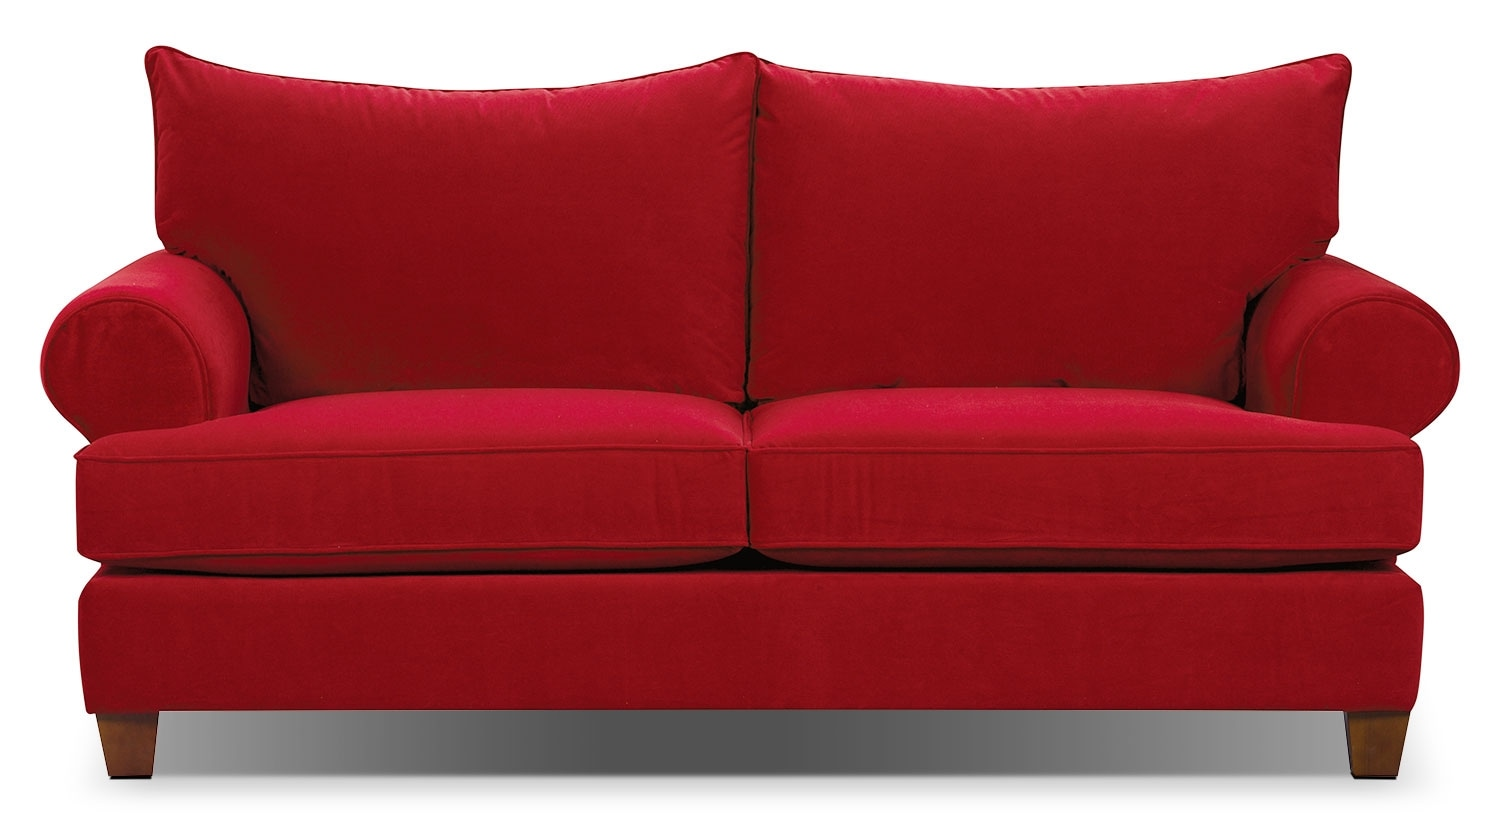 Paige Microsuede Sofa - Red